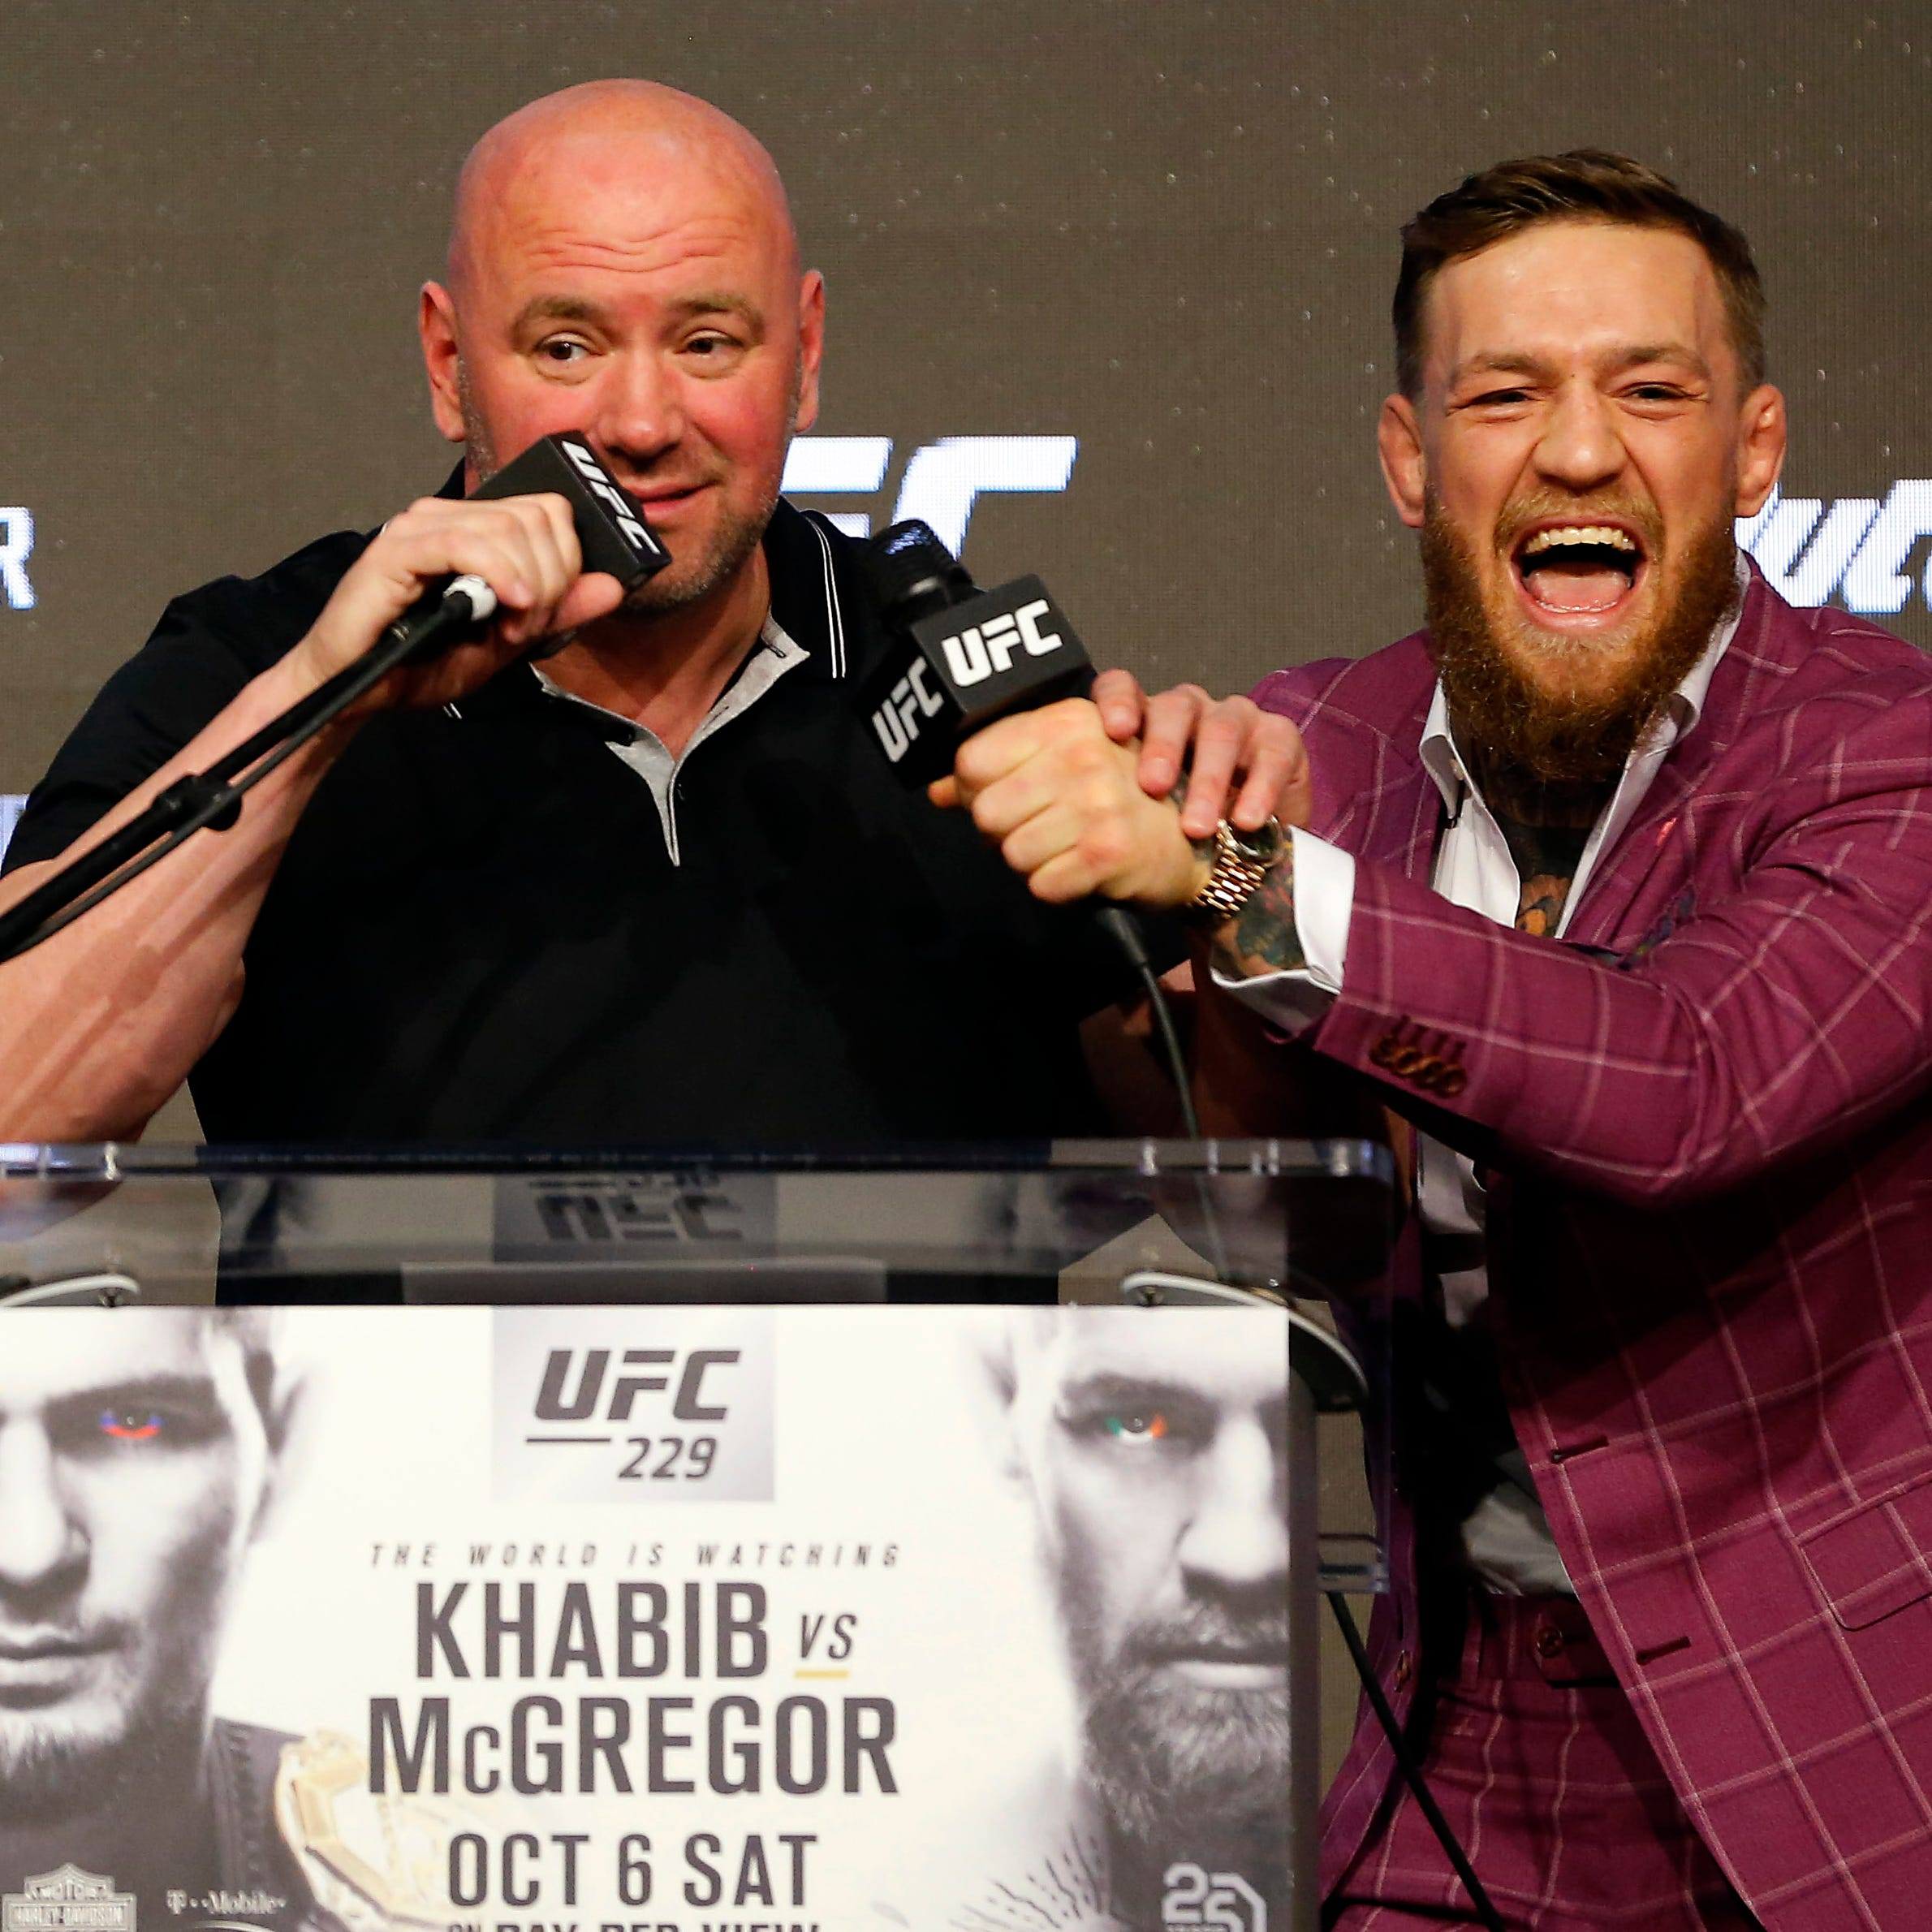 UFC President Dana White to be in Pensacola for Island Fights 51 on Friday